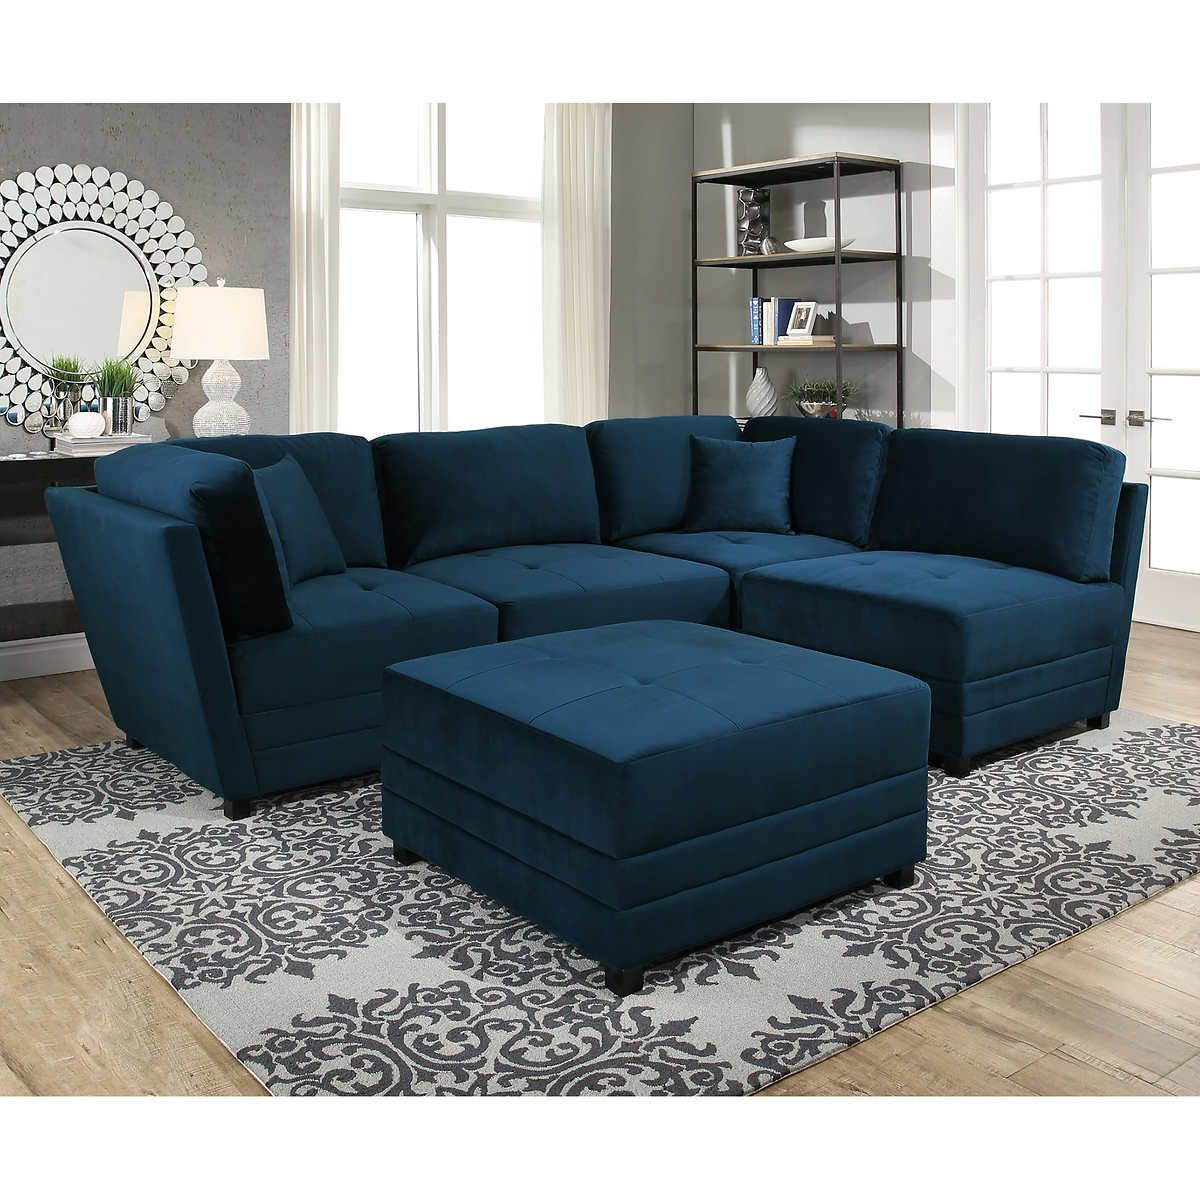 Best Leyla 5 Piece Fabric Modular Sectional With Images 400 x 300